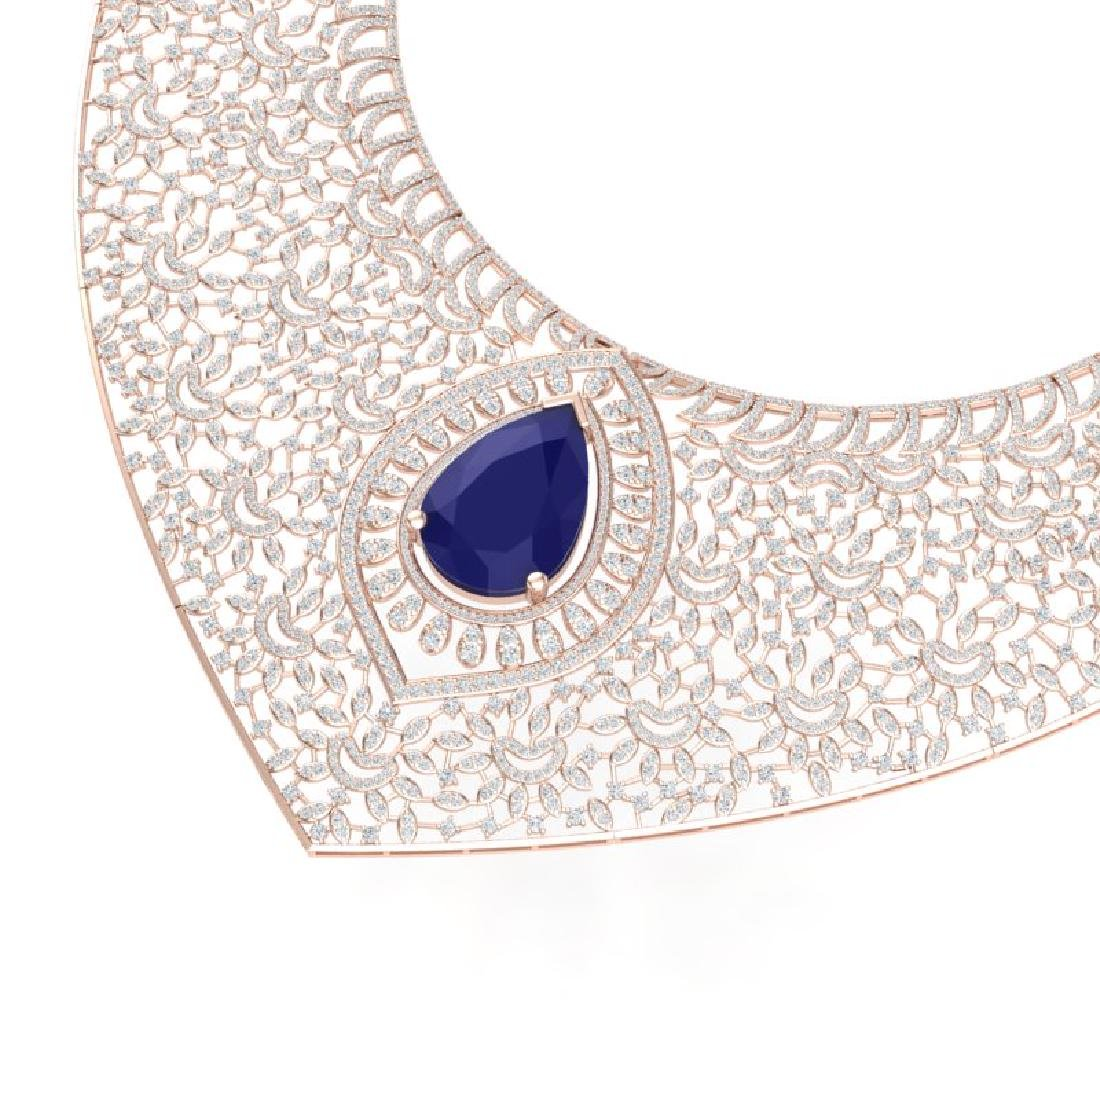 63.93 CTW Royalty Sapphire & VS Diamond Necklace 18K